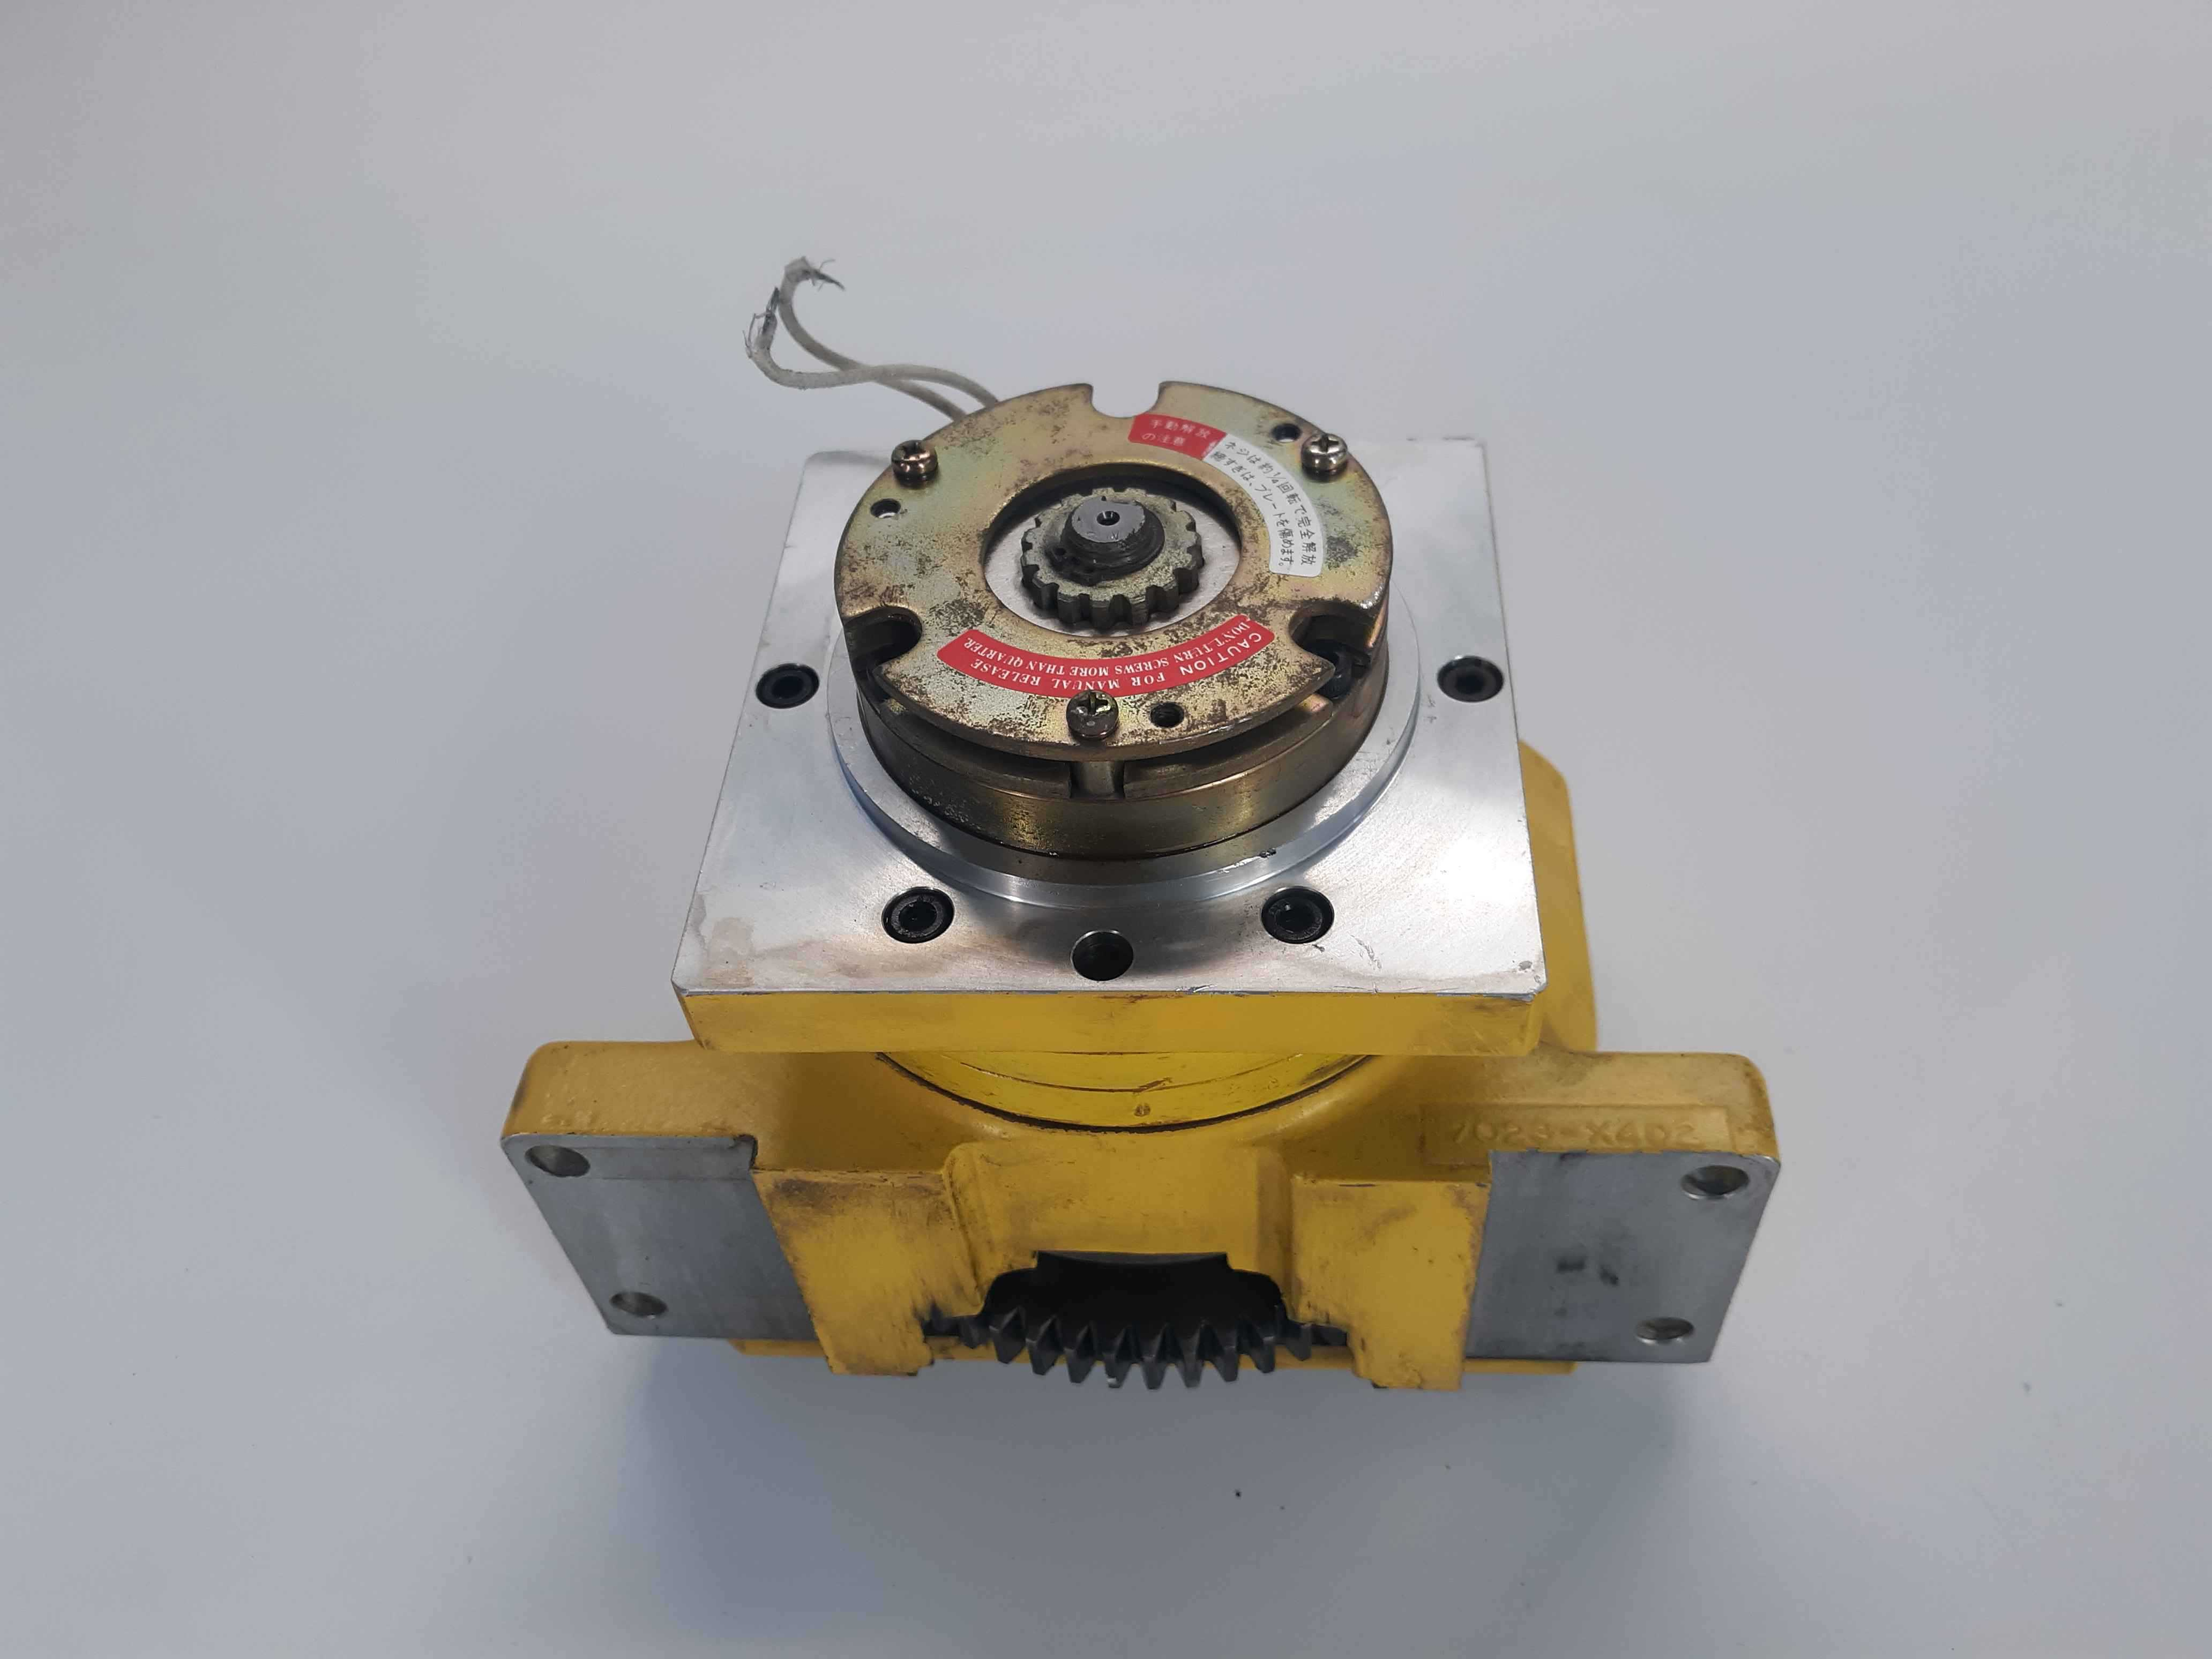 Fanuc 7023-X402 Robot Arm Axis  Part